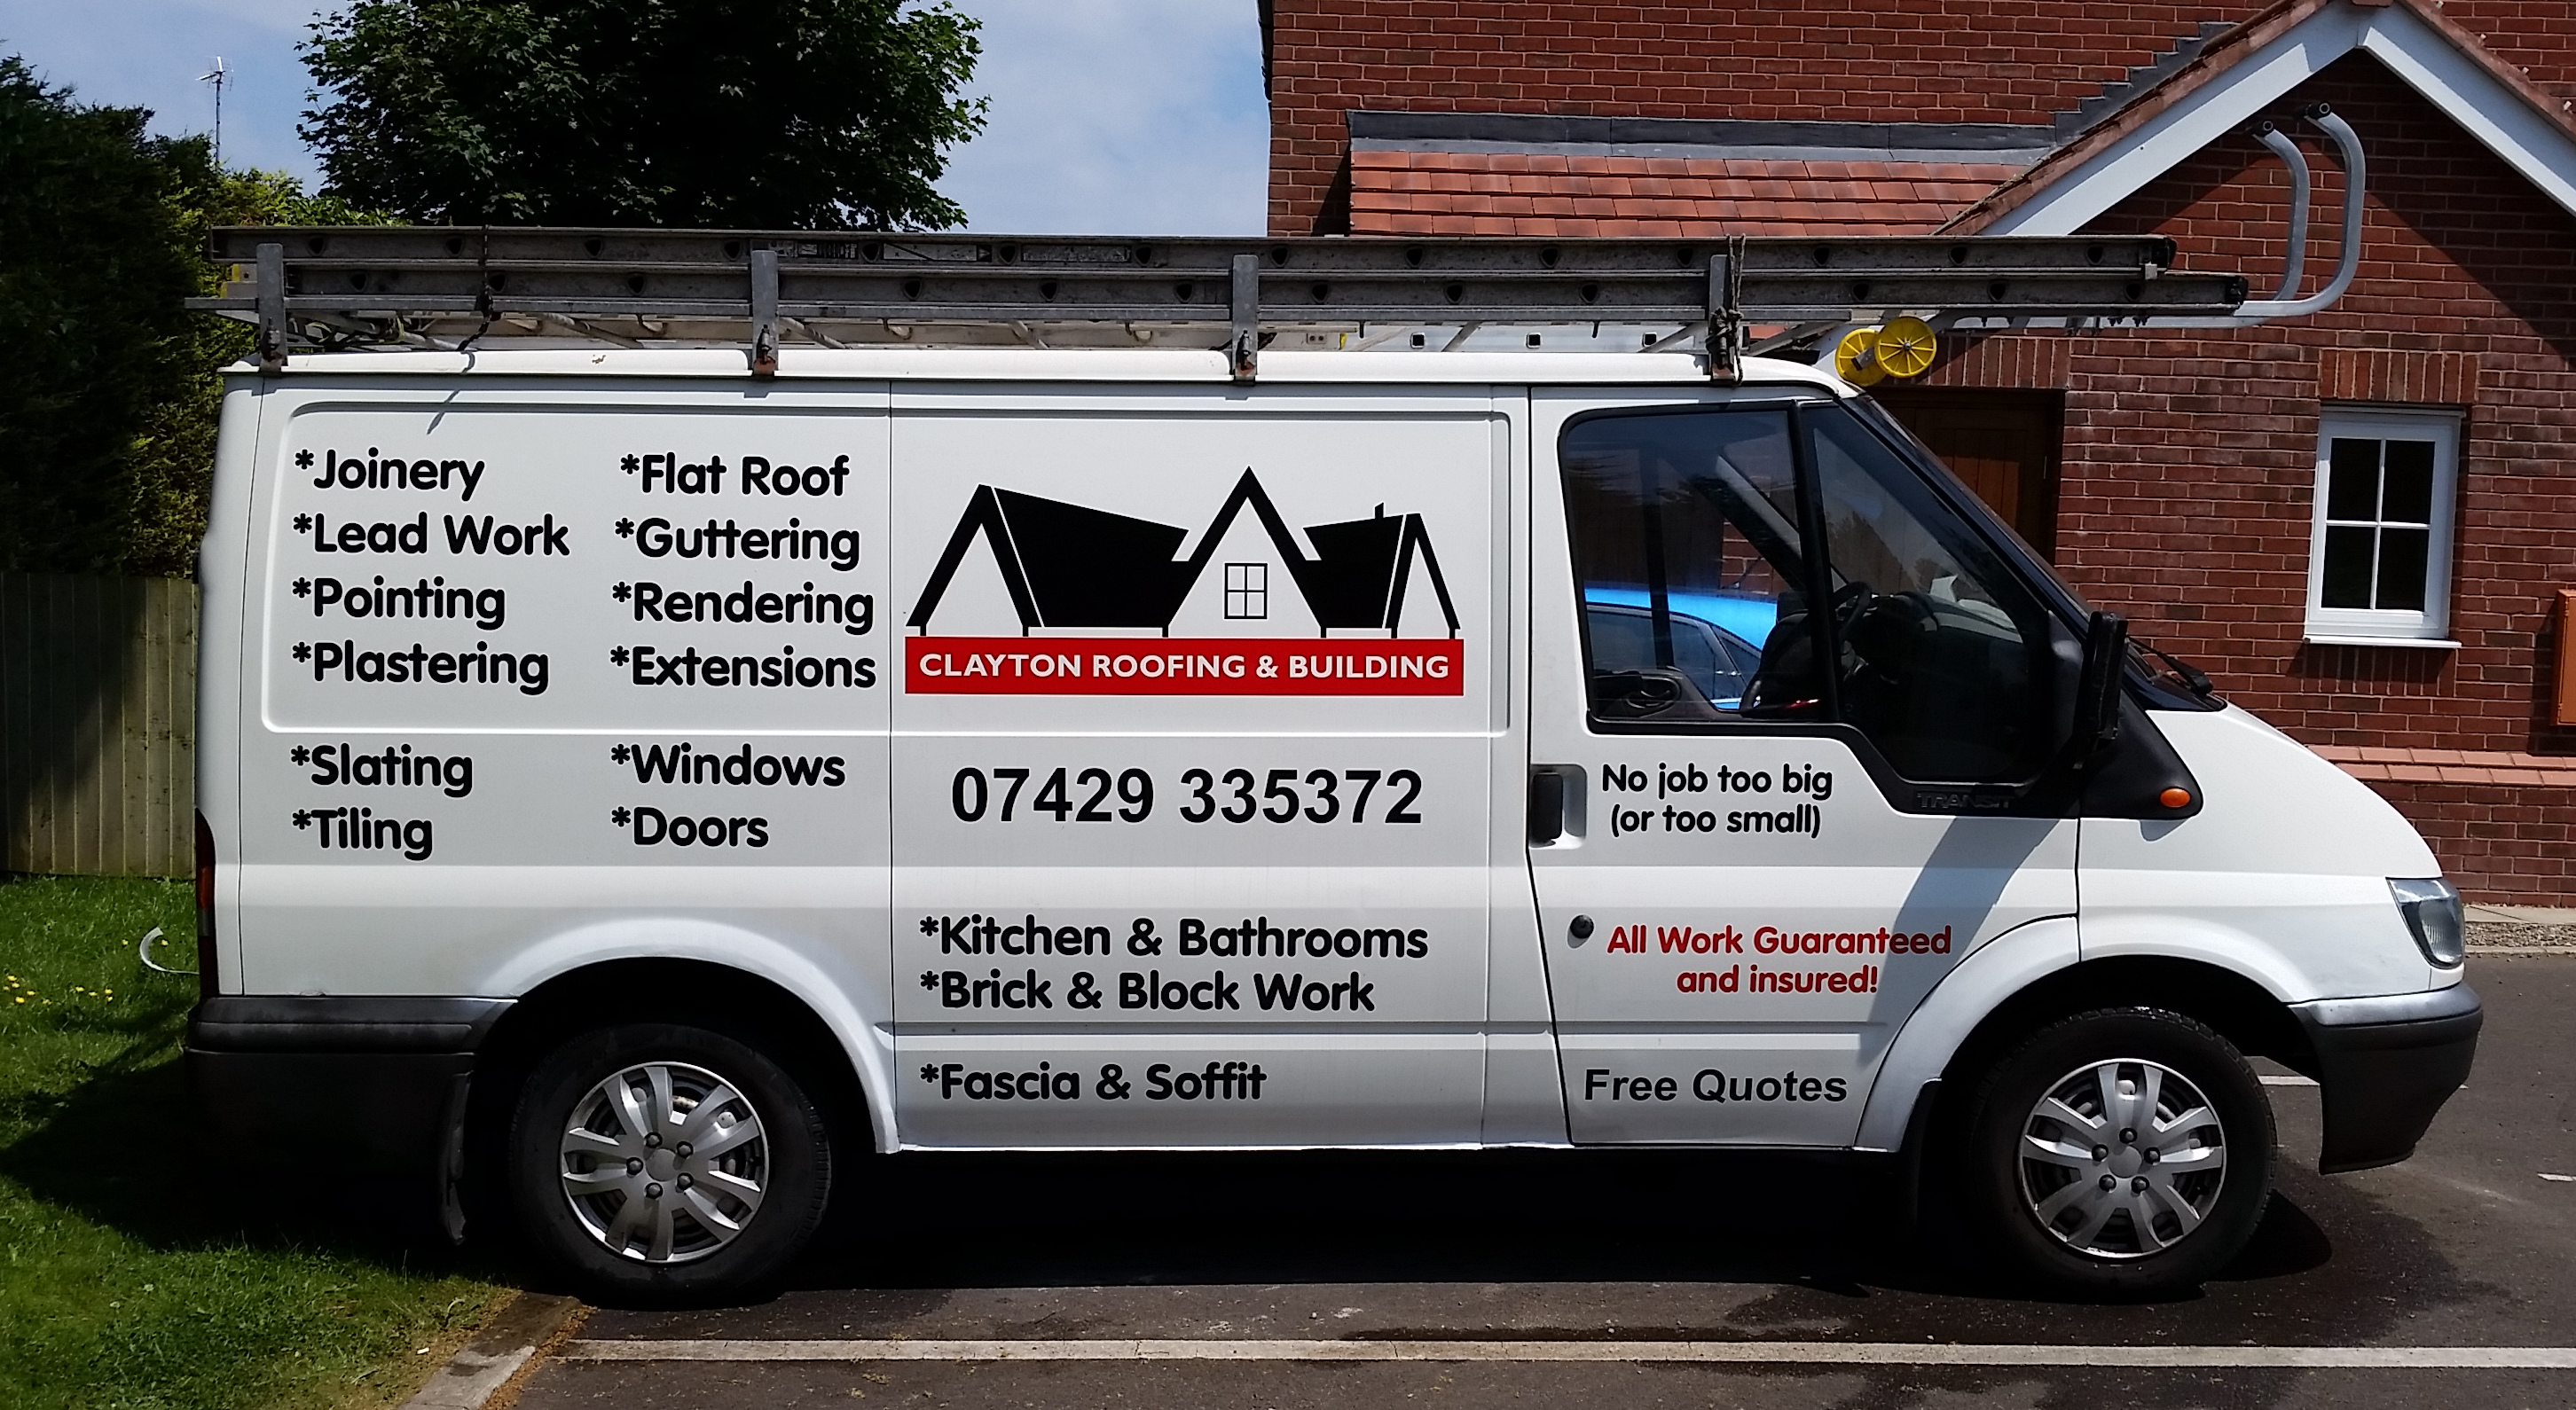 Roofing Van Amp Clayton Roofing And Building Cheshire